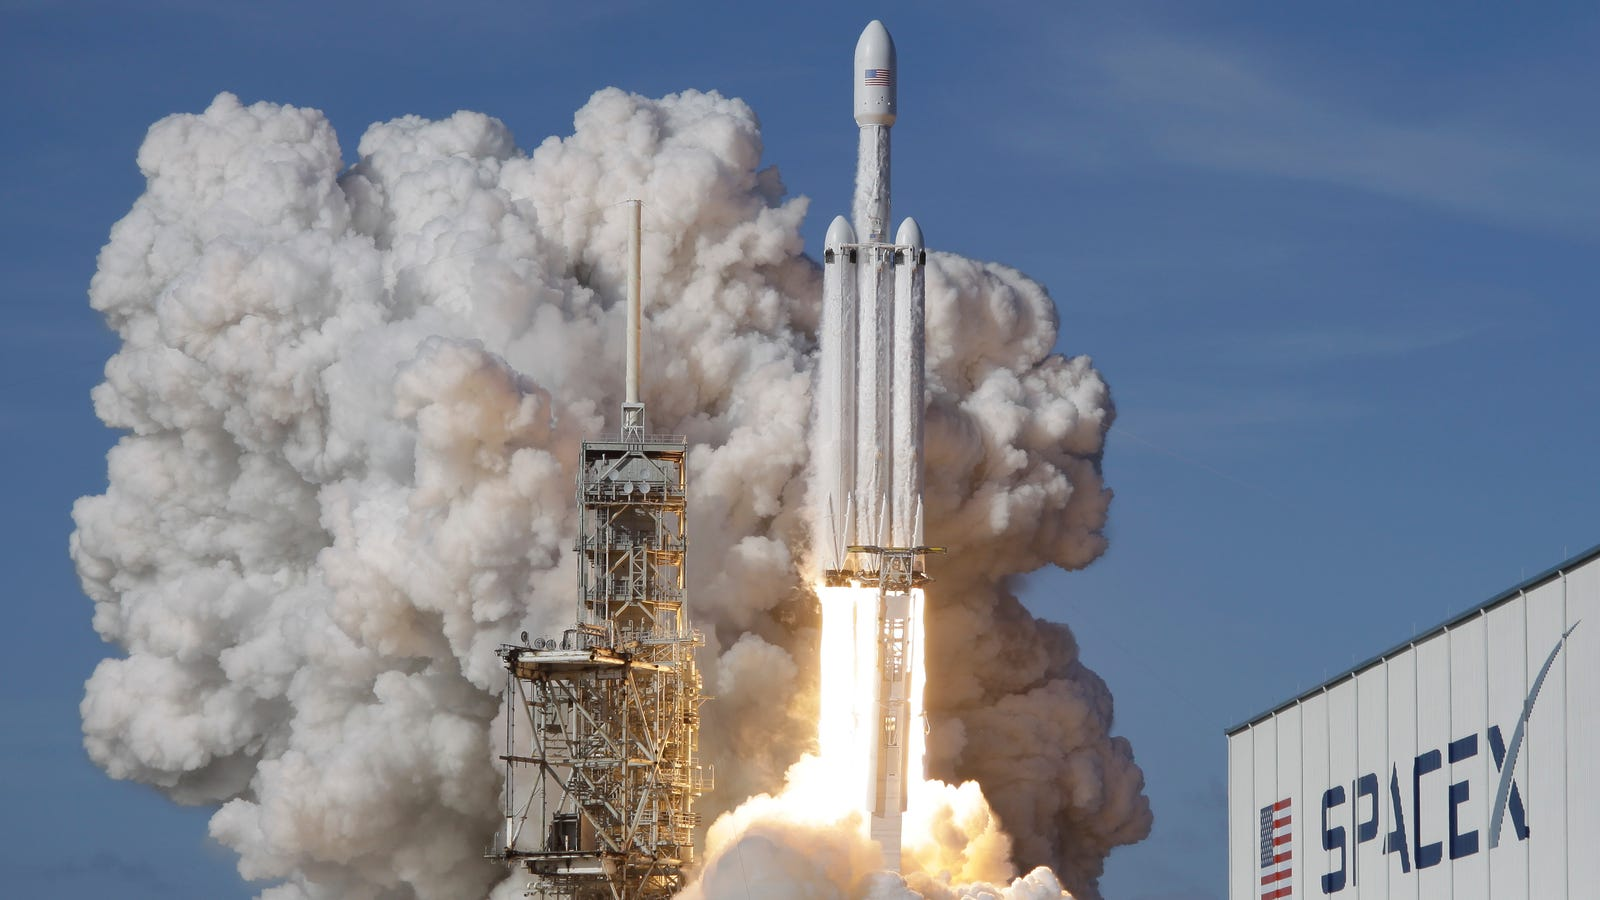 SpaceX Landed the Falcon Heavy's Two Boosters, But Its Core Clipped Its Drone Ship at 300 MPH